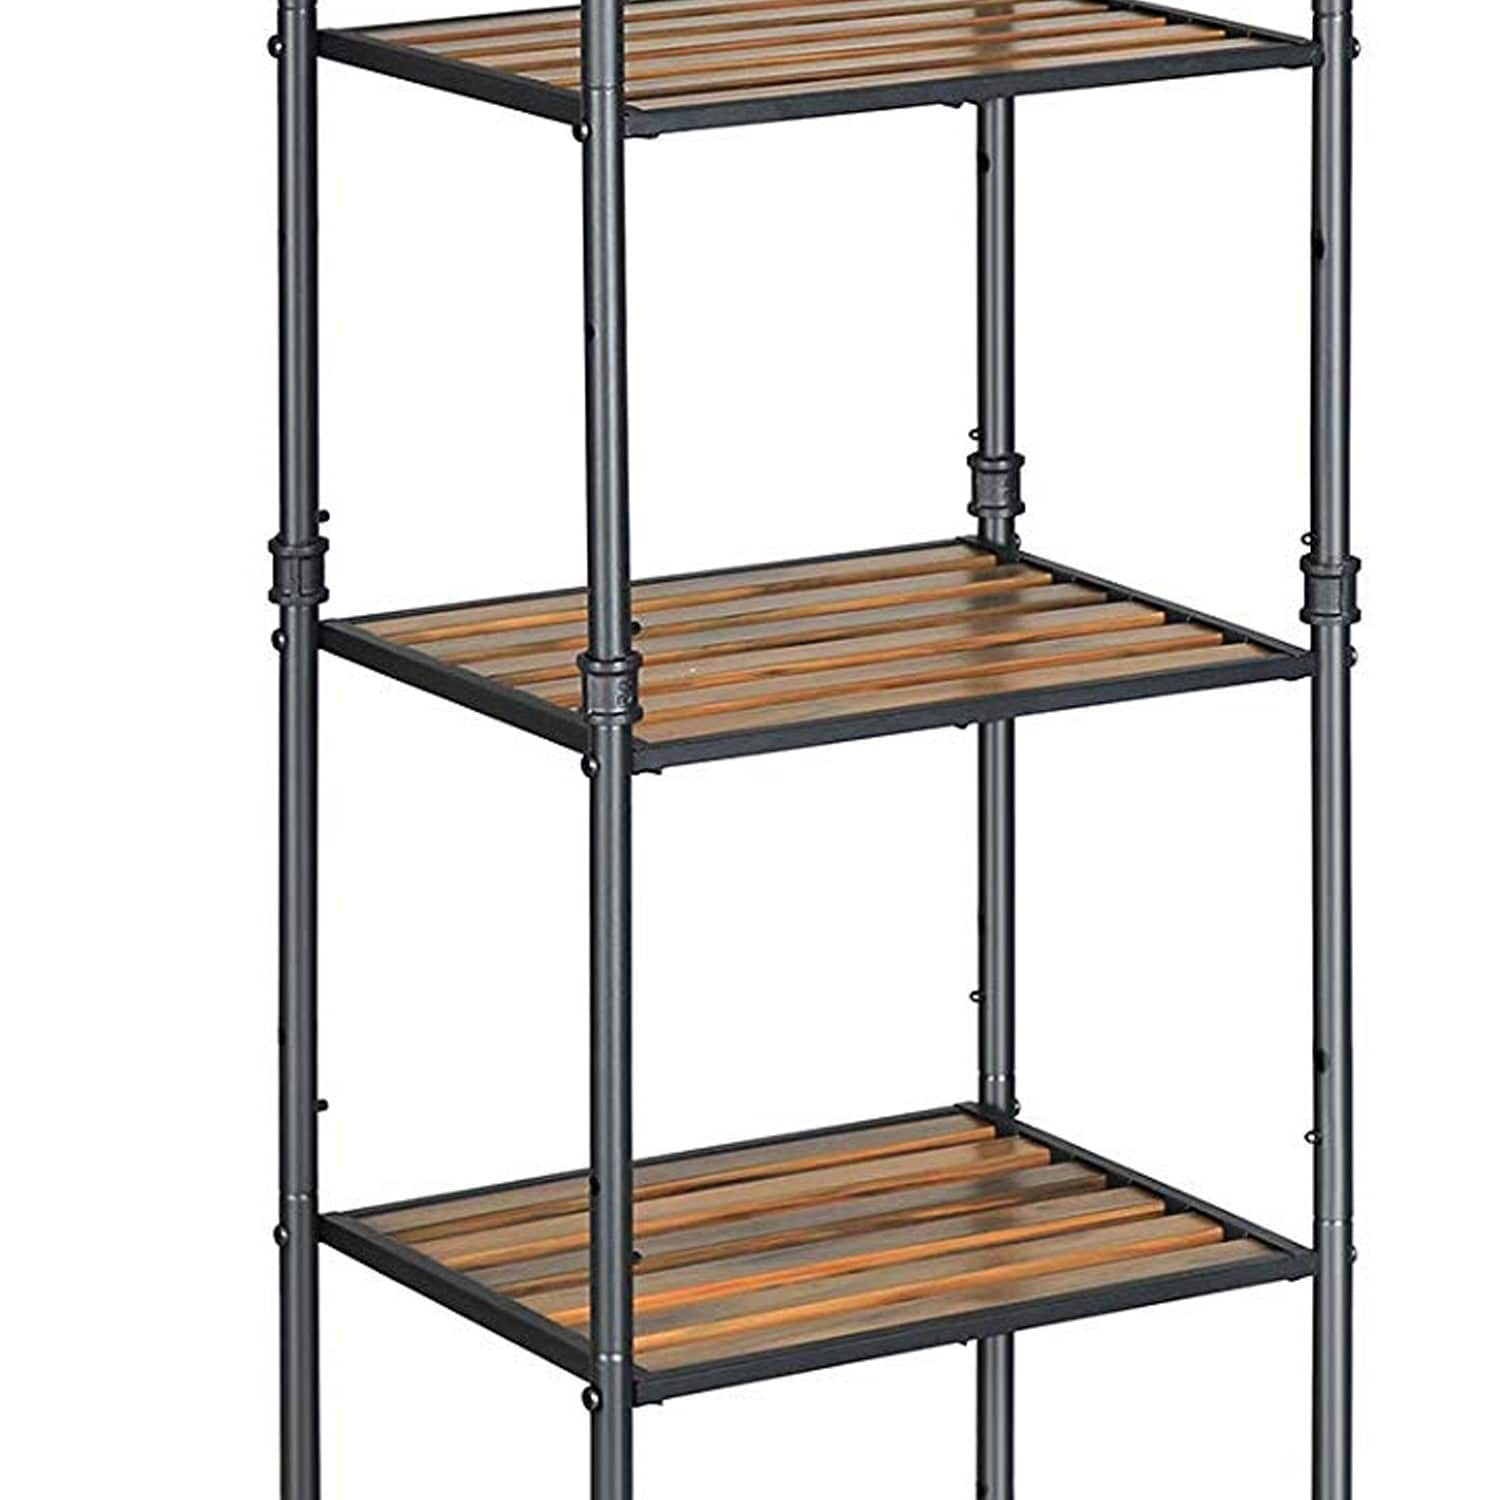 5 Tier Metal Frame Plant Stand With Adjustable Shelves Brown And Black On Sale Overstock 30825170